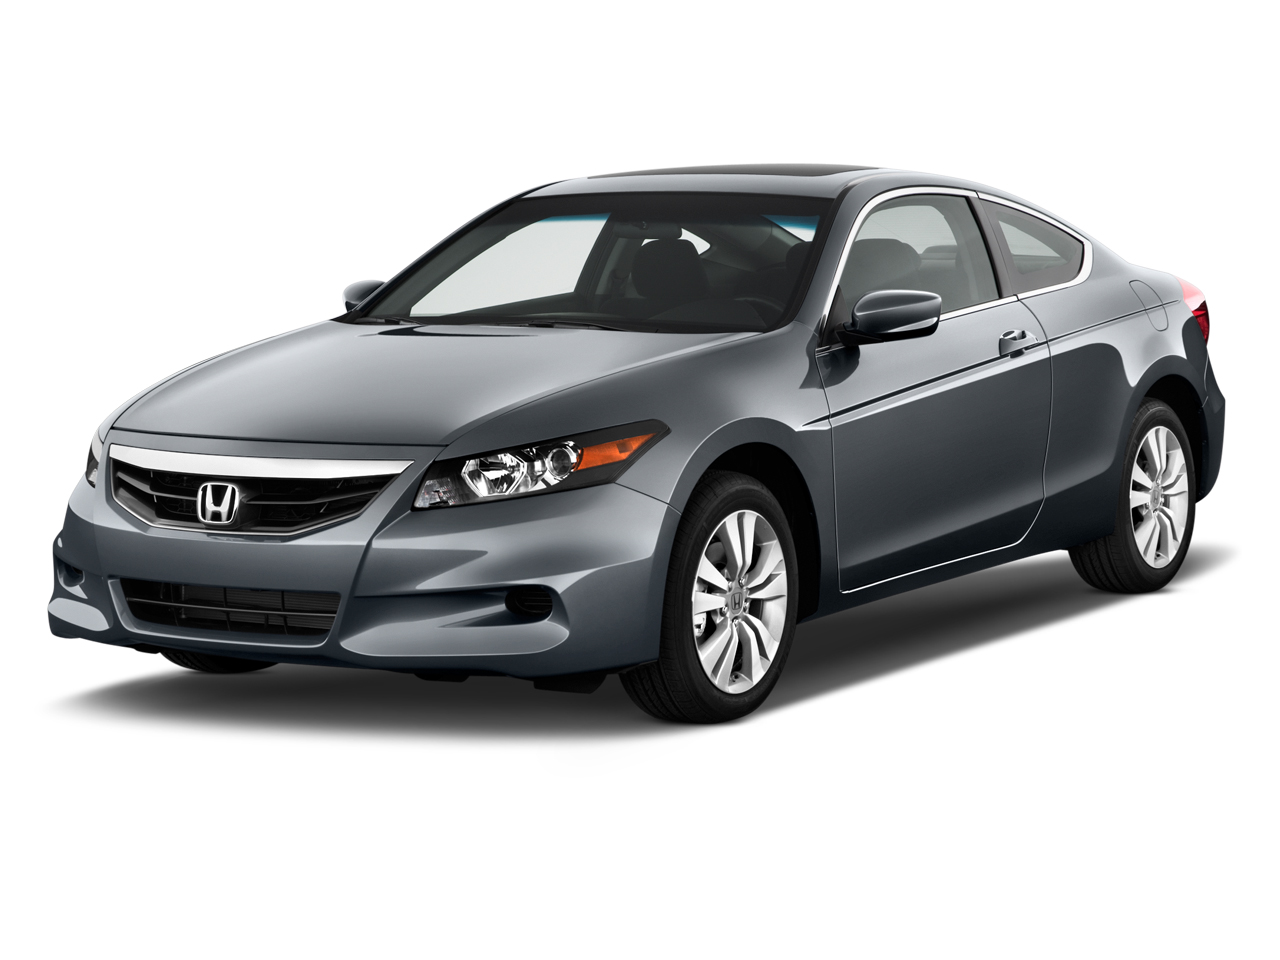 2011 honda accord coupe review ratings specs prices and photos. Black Bedroom Furniture Sets. Home Design Ideas